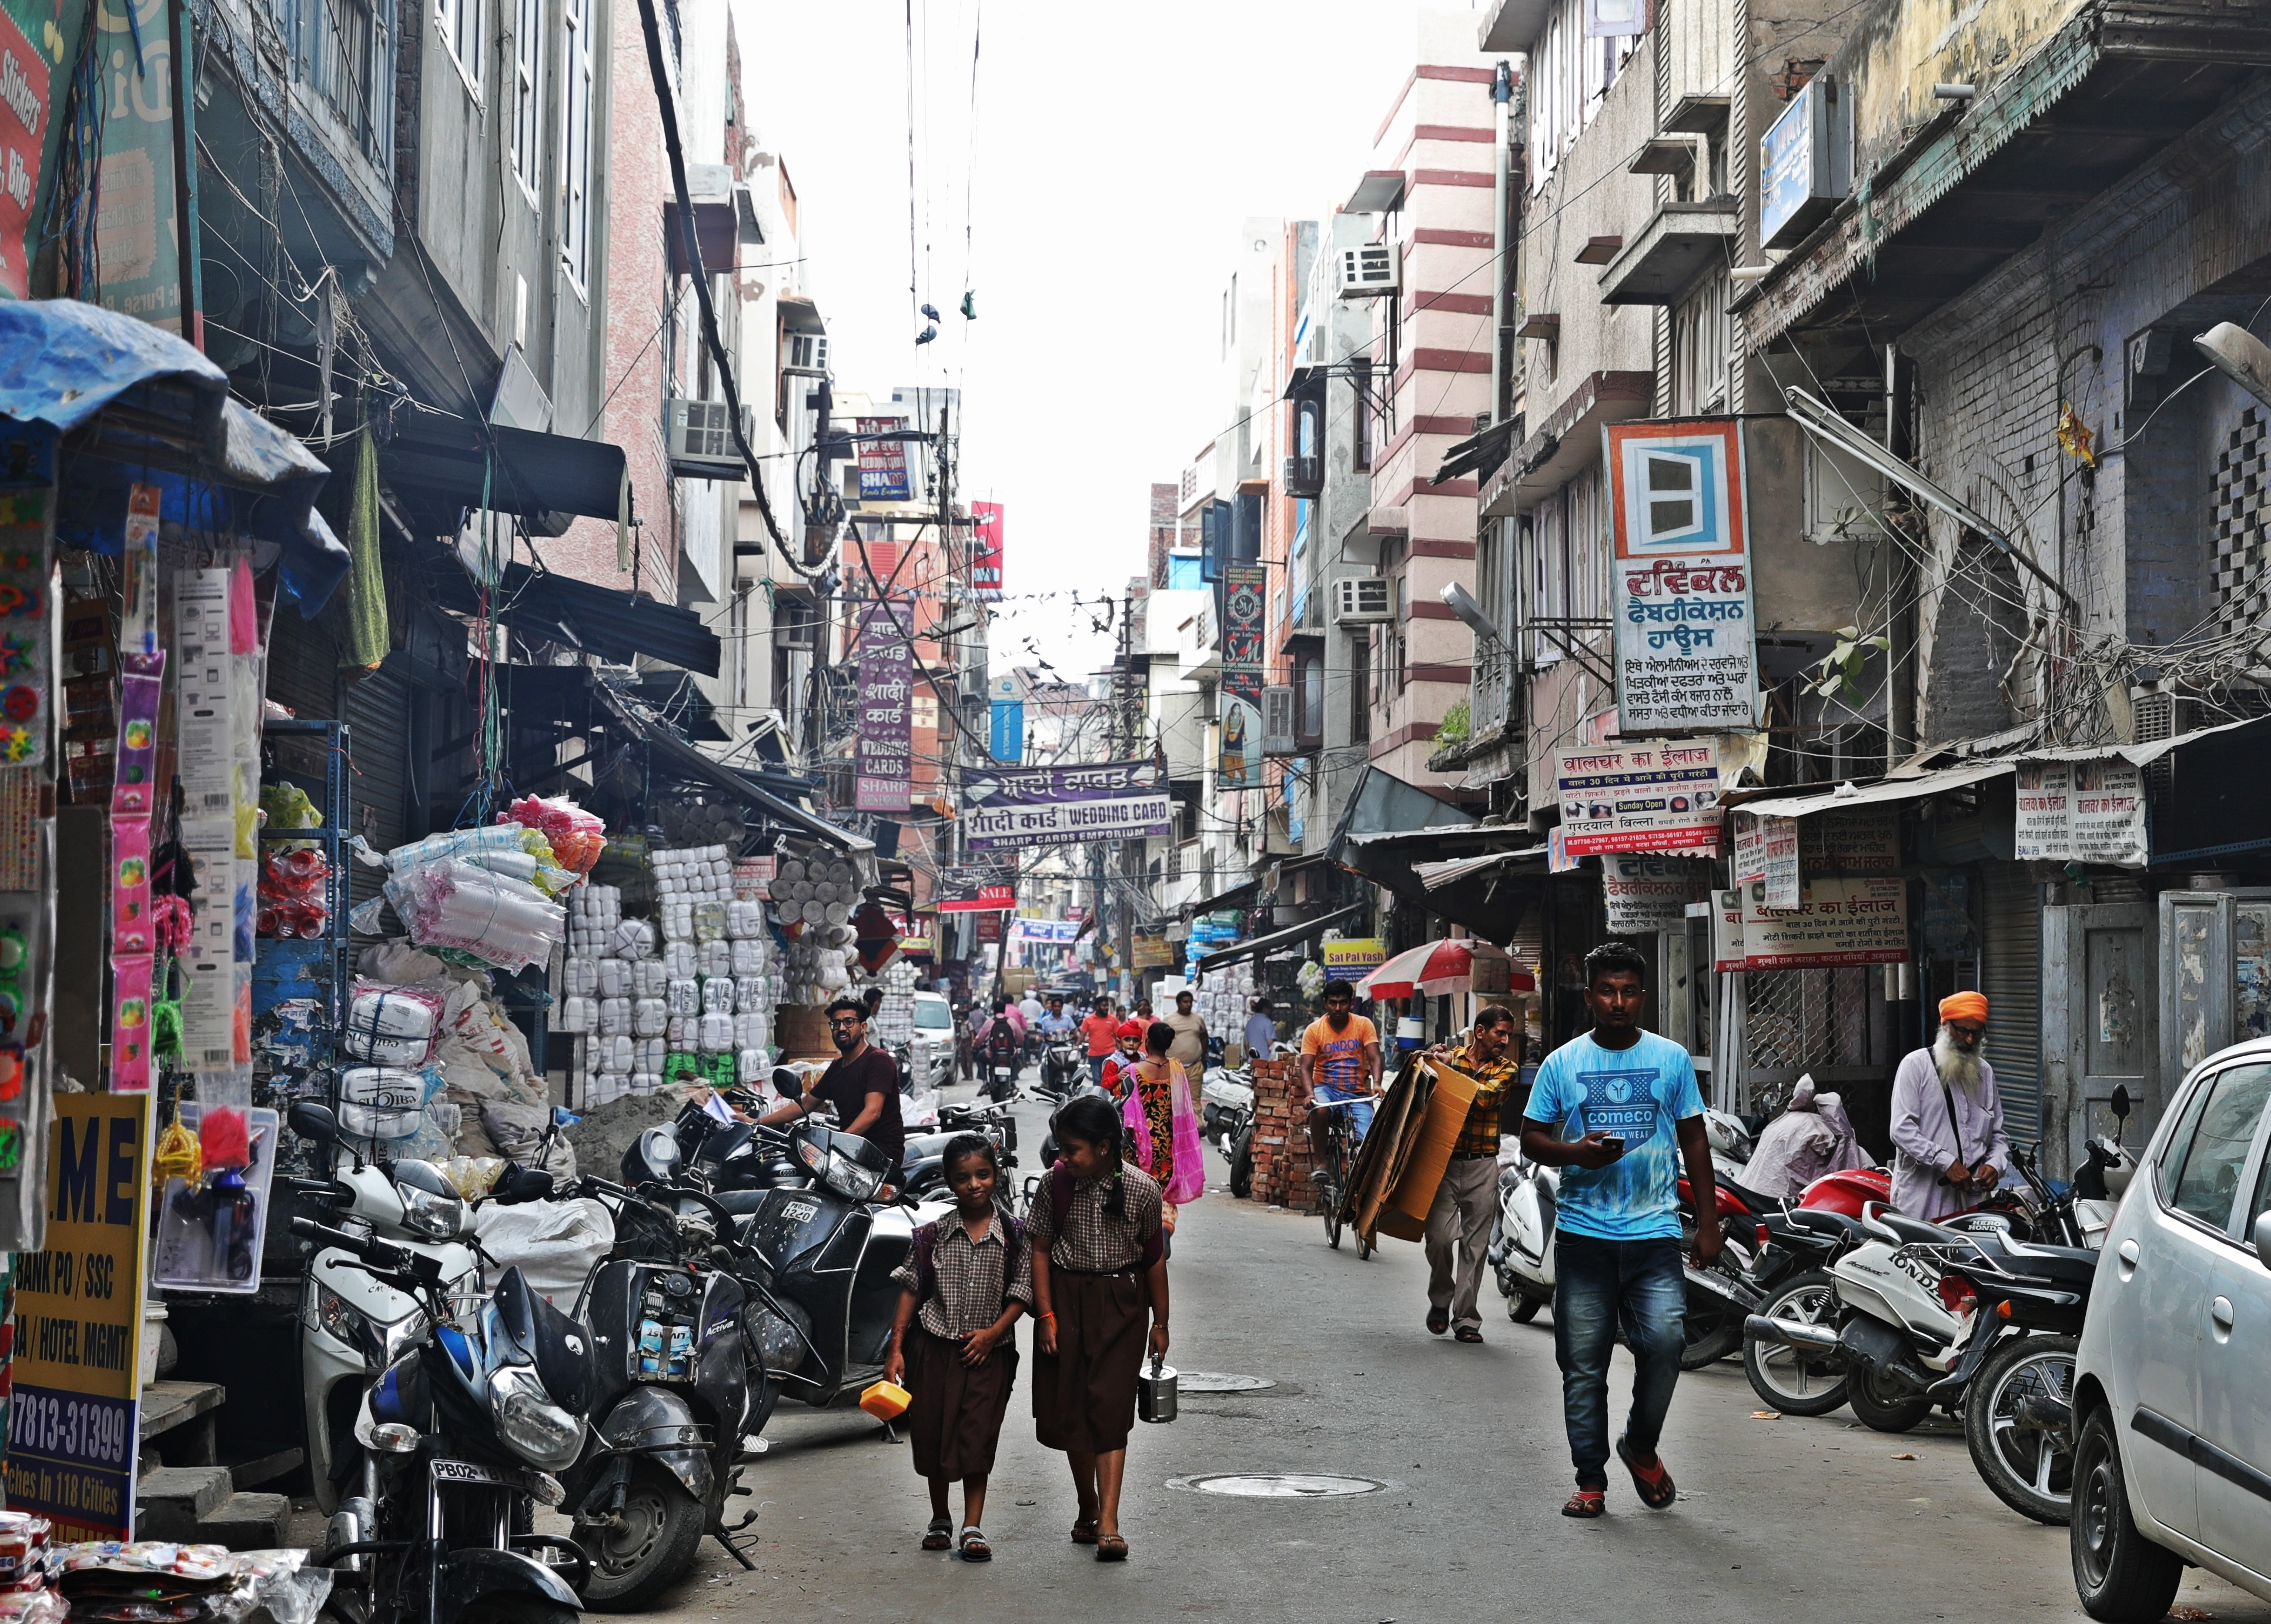 Typical street in Amritsar